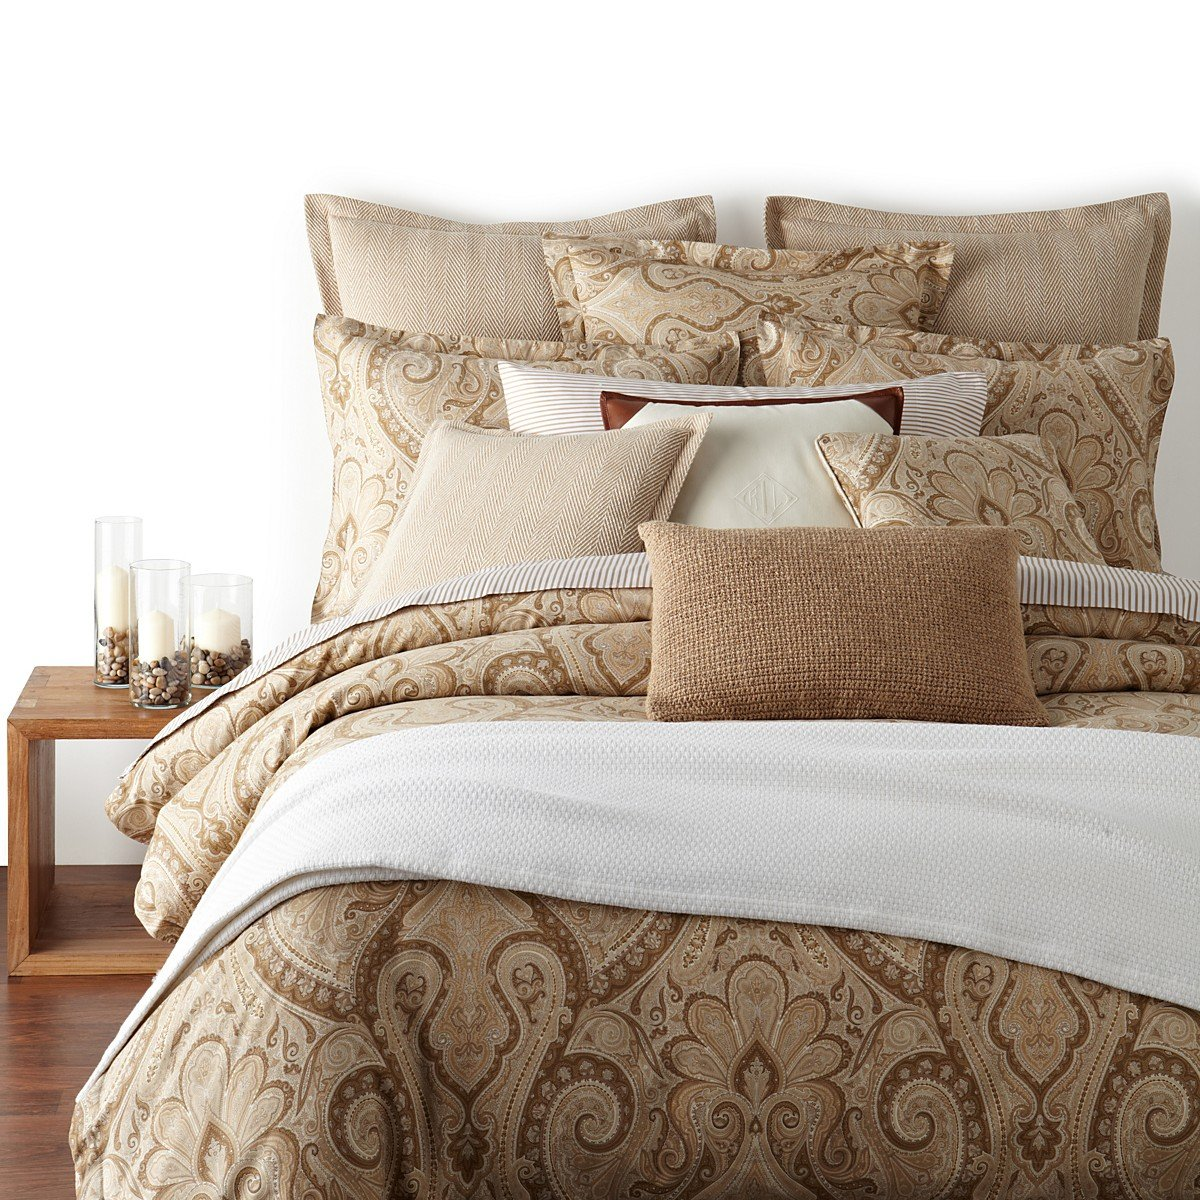 Ralph Lauren Desert Spa Paisley Full/Queen Duvet / Comforter Cover